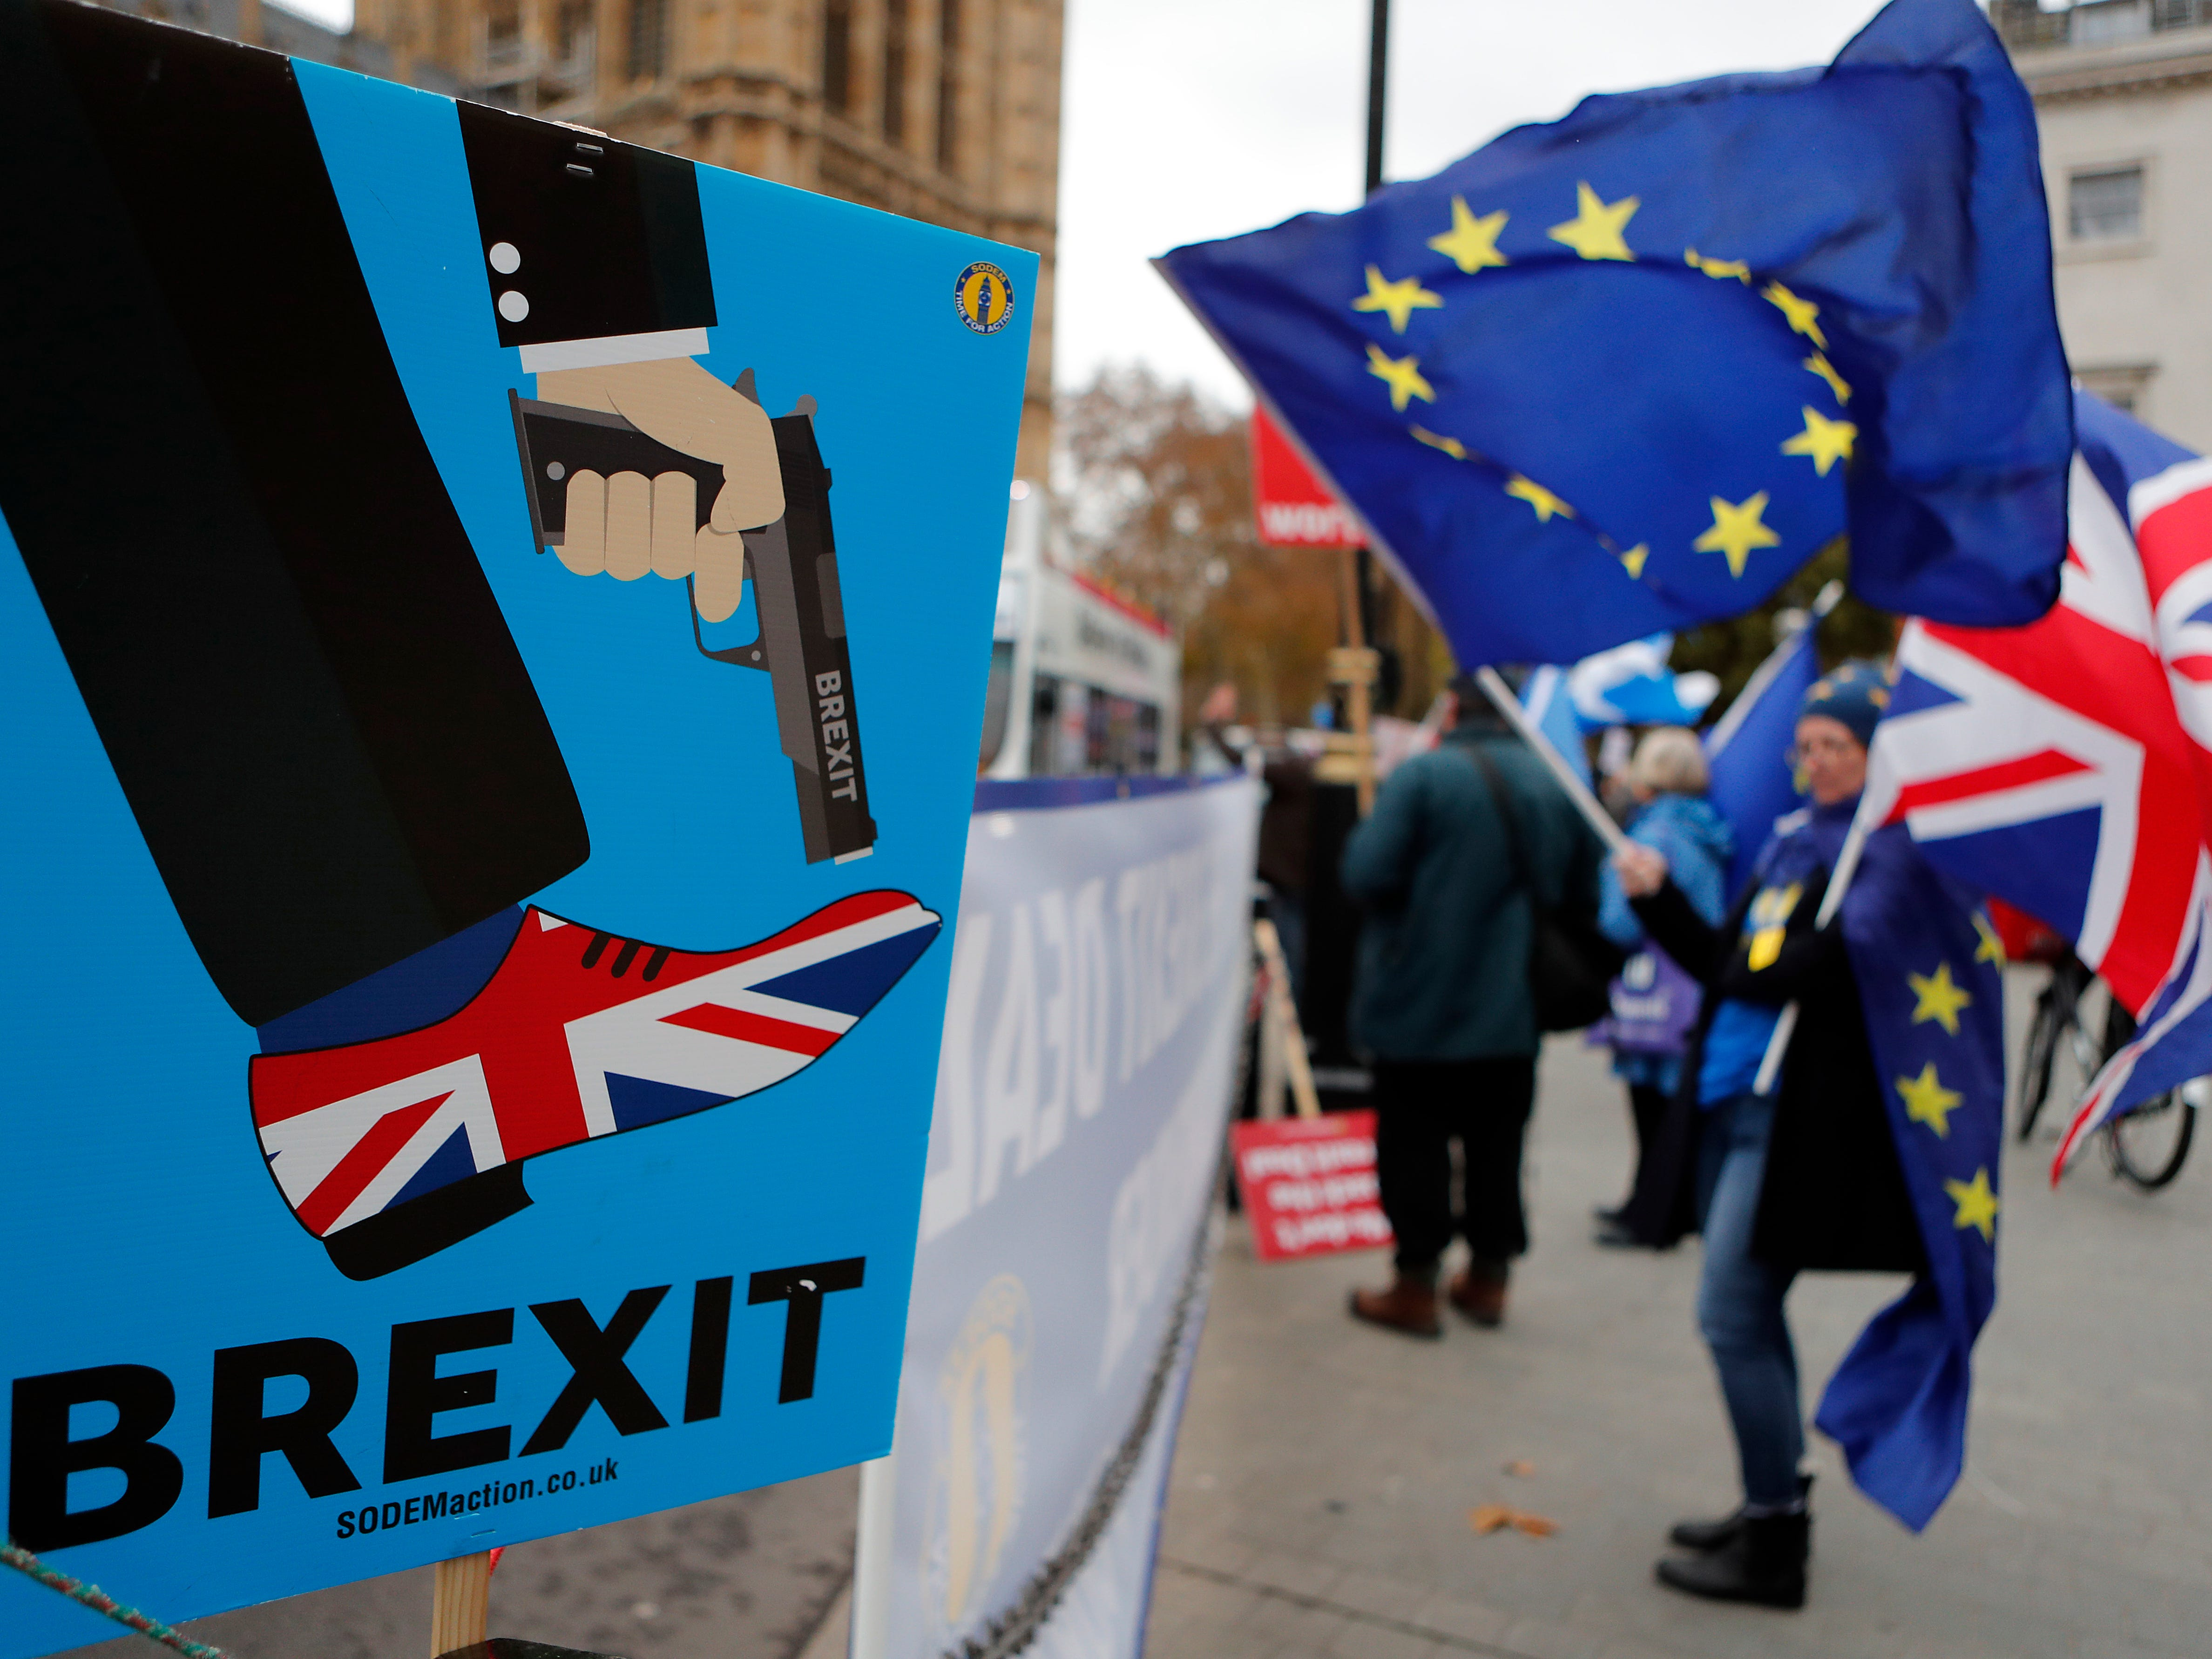 Protesters demonstrate opposite Parliament against Britain's Brexit split from Europe, in London, Thursday, Dec. 6, 2018. Prime Minister Theresa May's effort to win support for her Brexit agreement comes amid reports in British newspapers that Parliament could reject the deal by more than 100 votes.